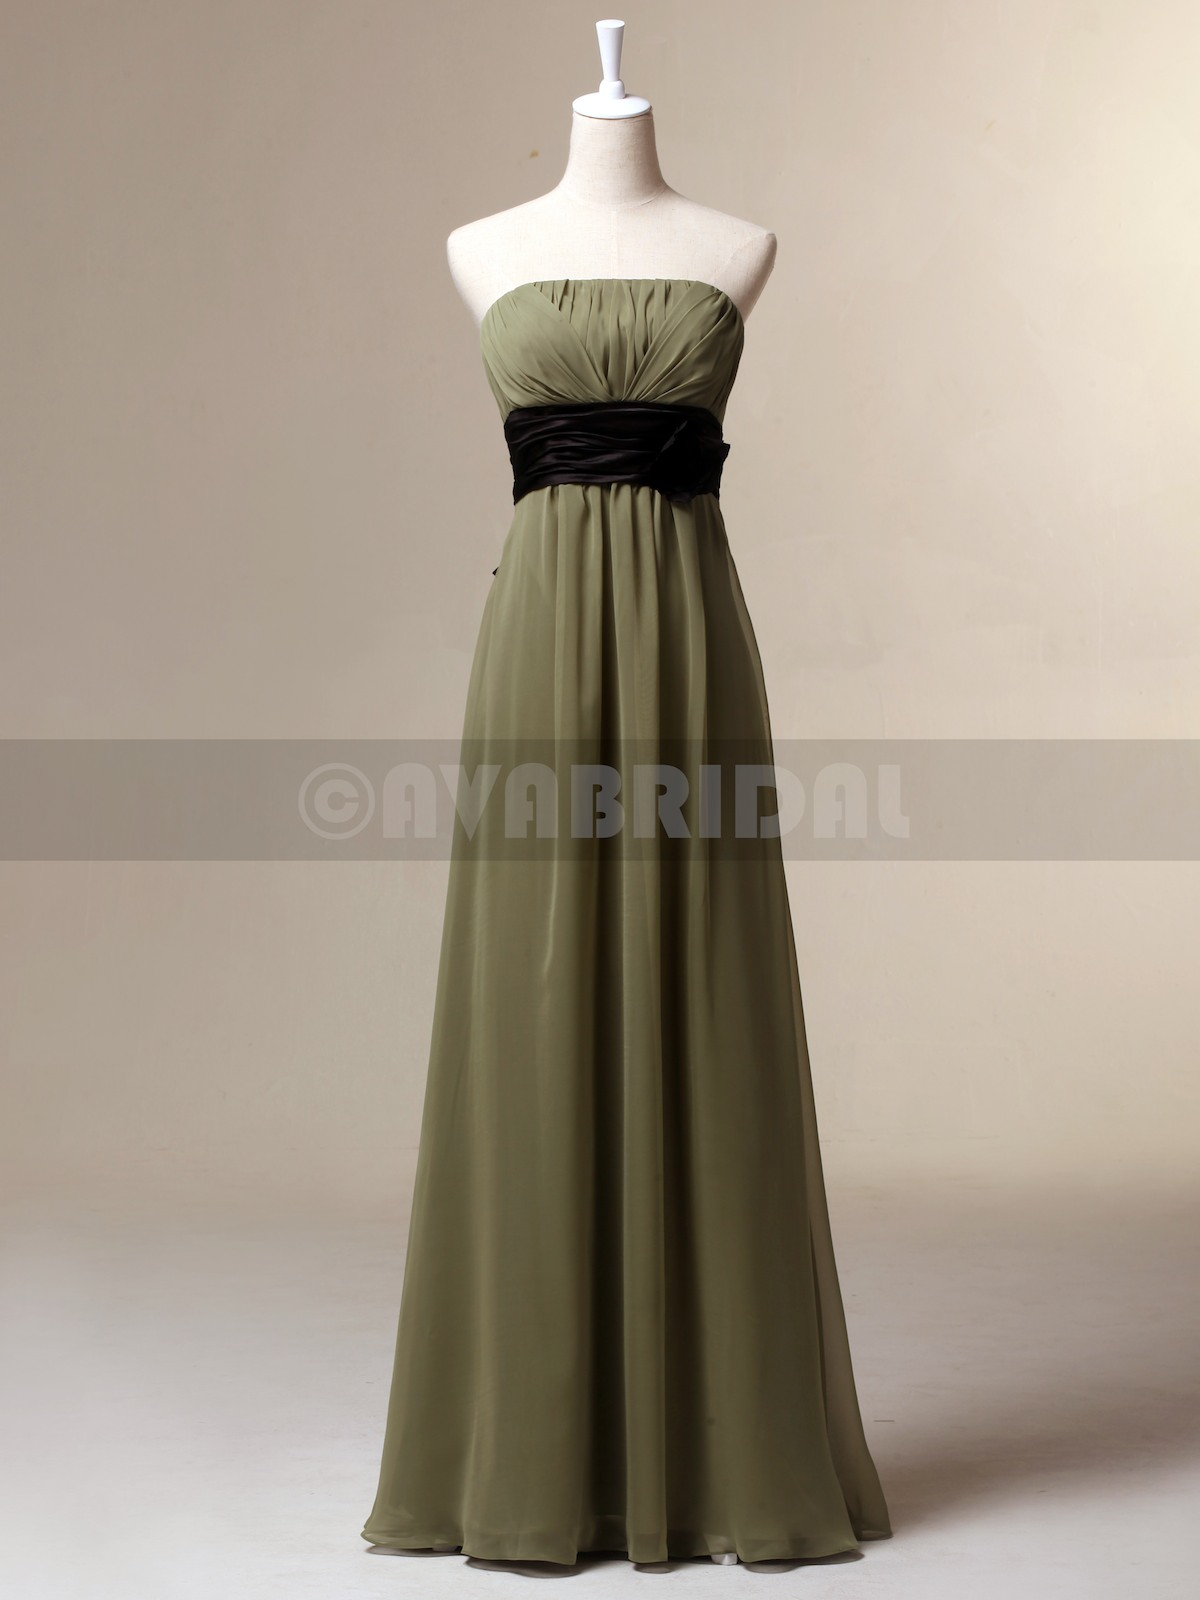 Beach Casual Slim Line Bridesmaid Dress B448-Front